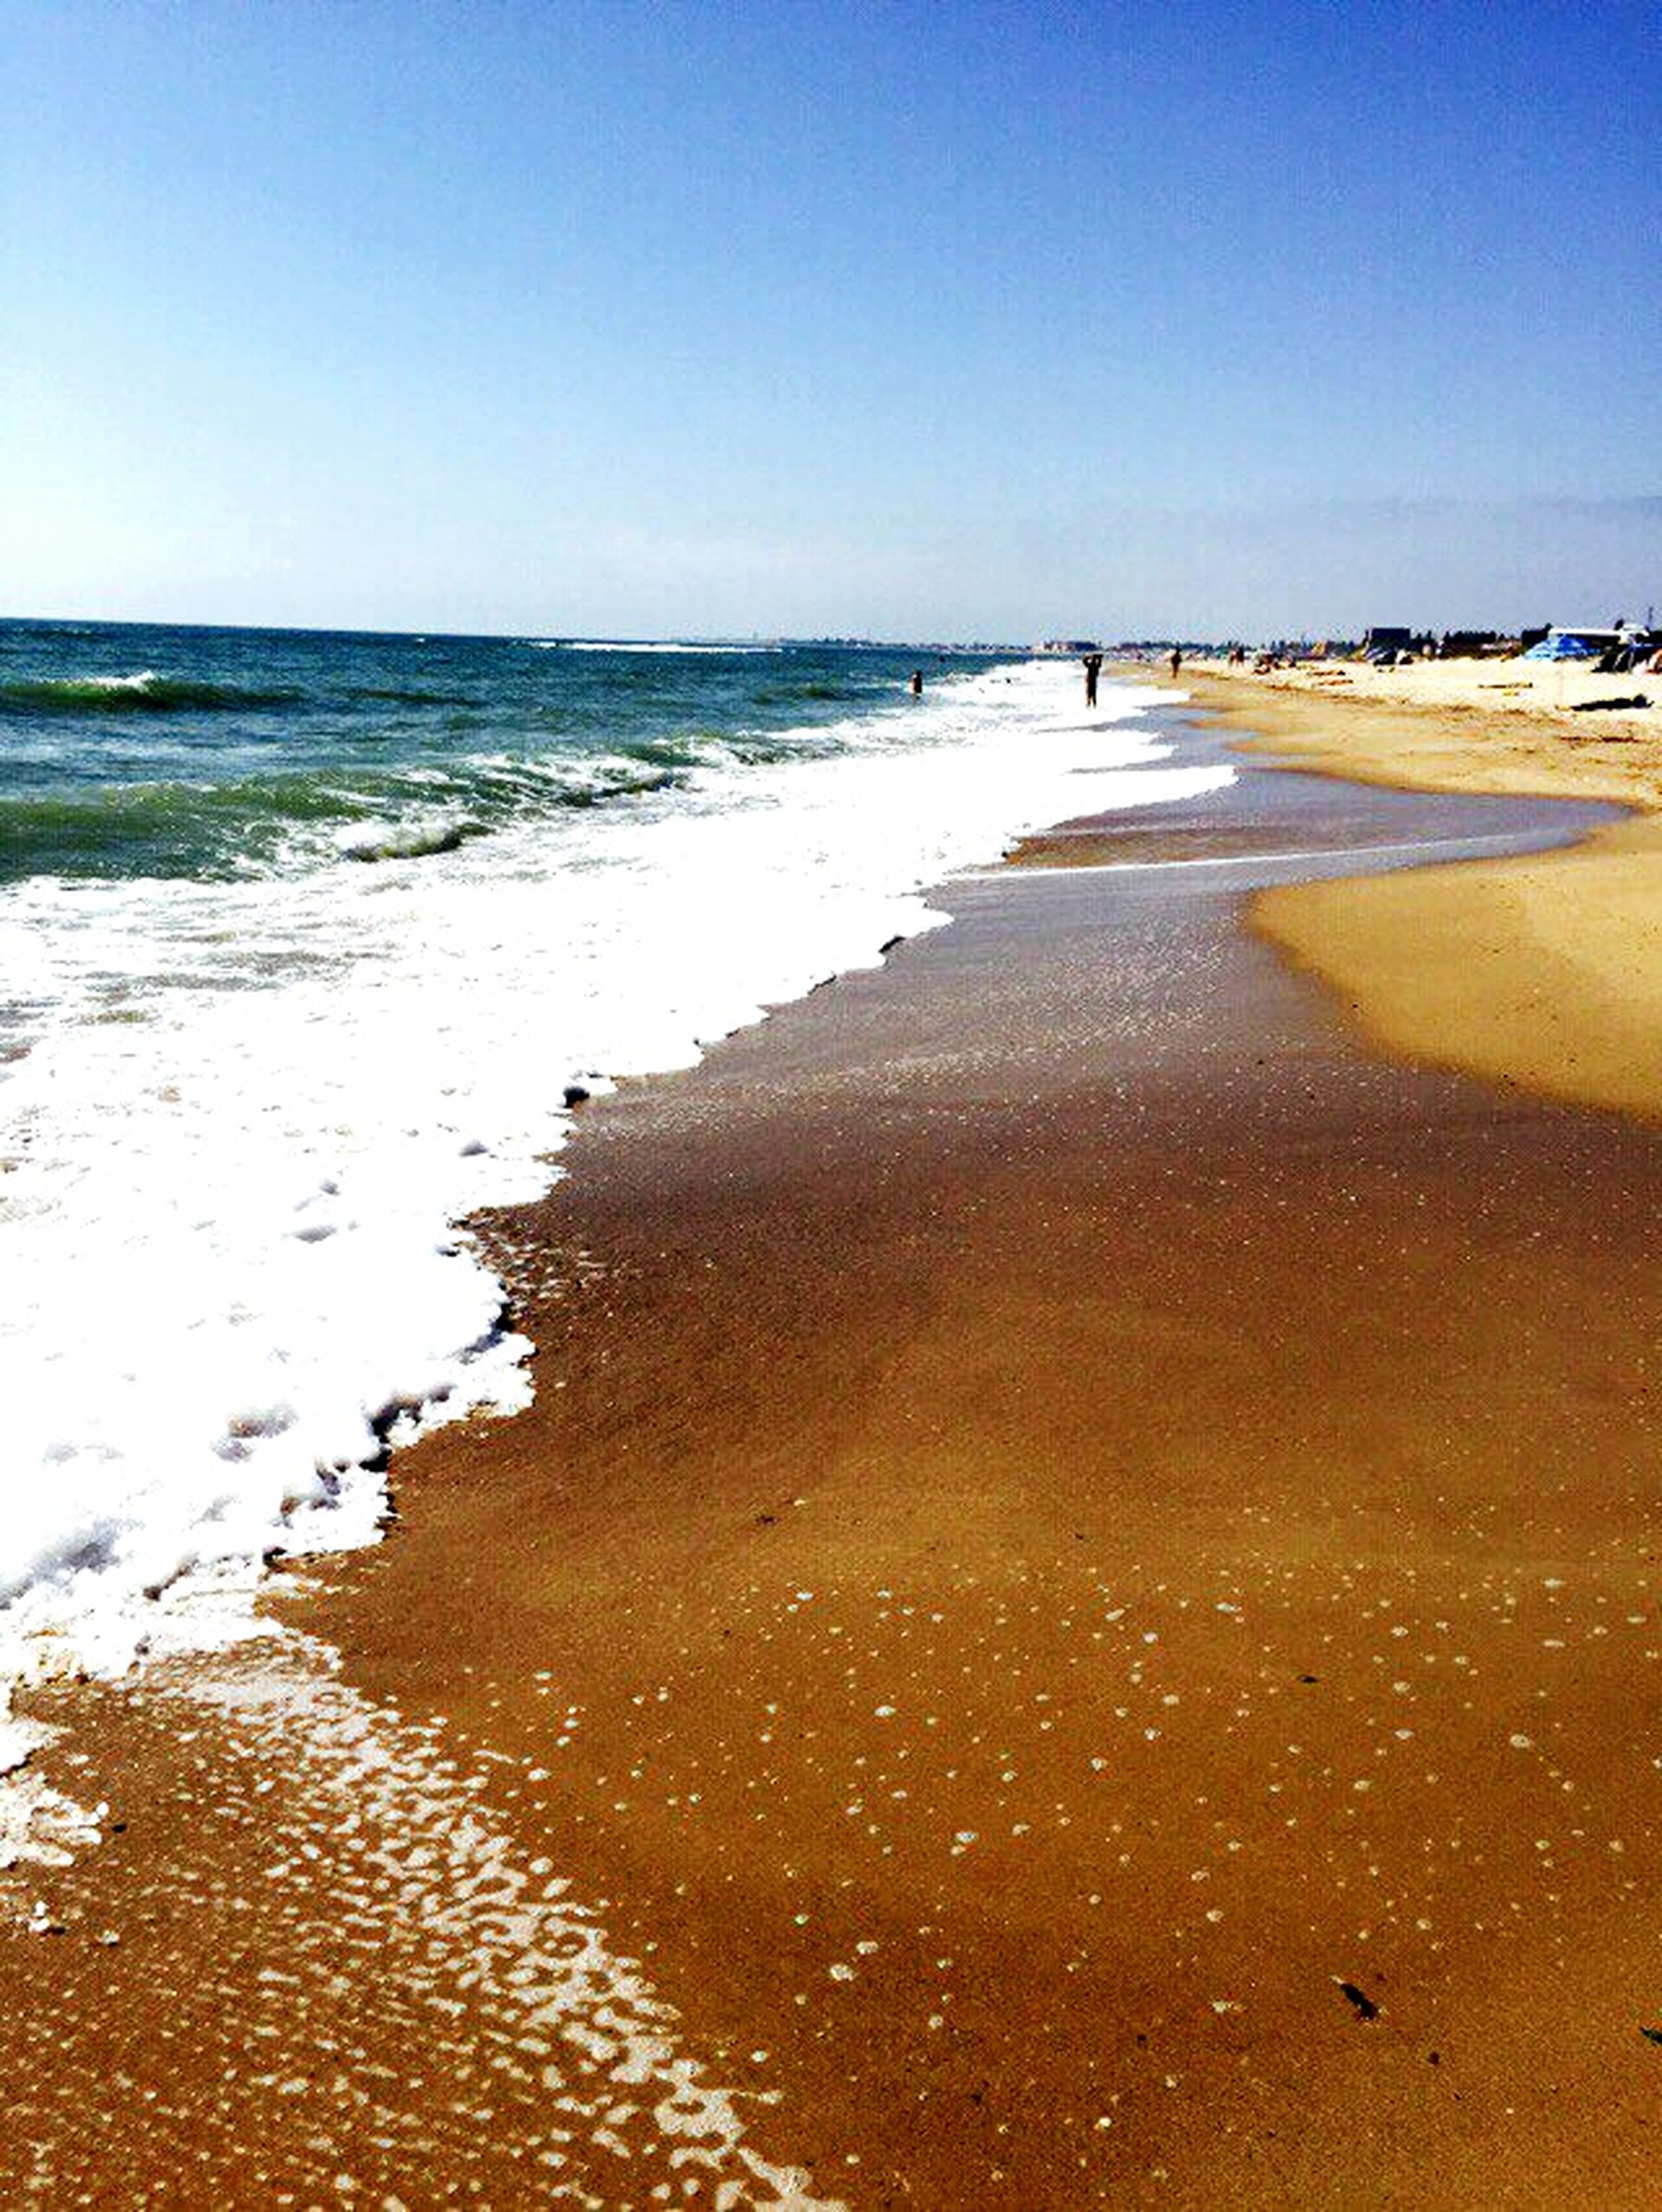 sea, beach, water, clear sky, horizon over water, sand, shore, tranquility, tranquil scene, scenics, wave, beauty in nature, nature, coastline, idyllic, blue, outdoors, sky, vacations, travel destinations, no people, ocean, day, tourism, remote, the way forward, calm, non-urban scene